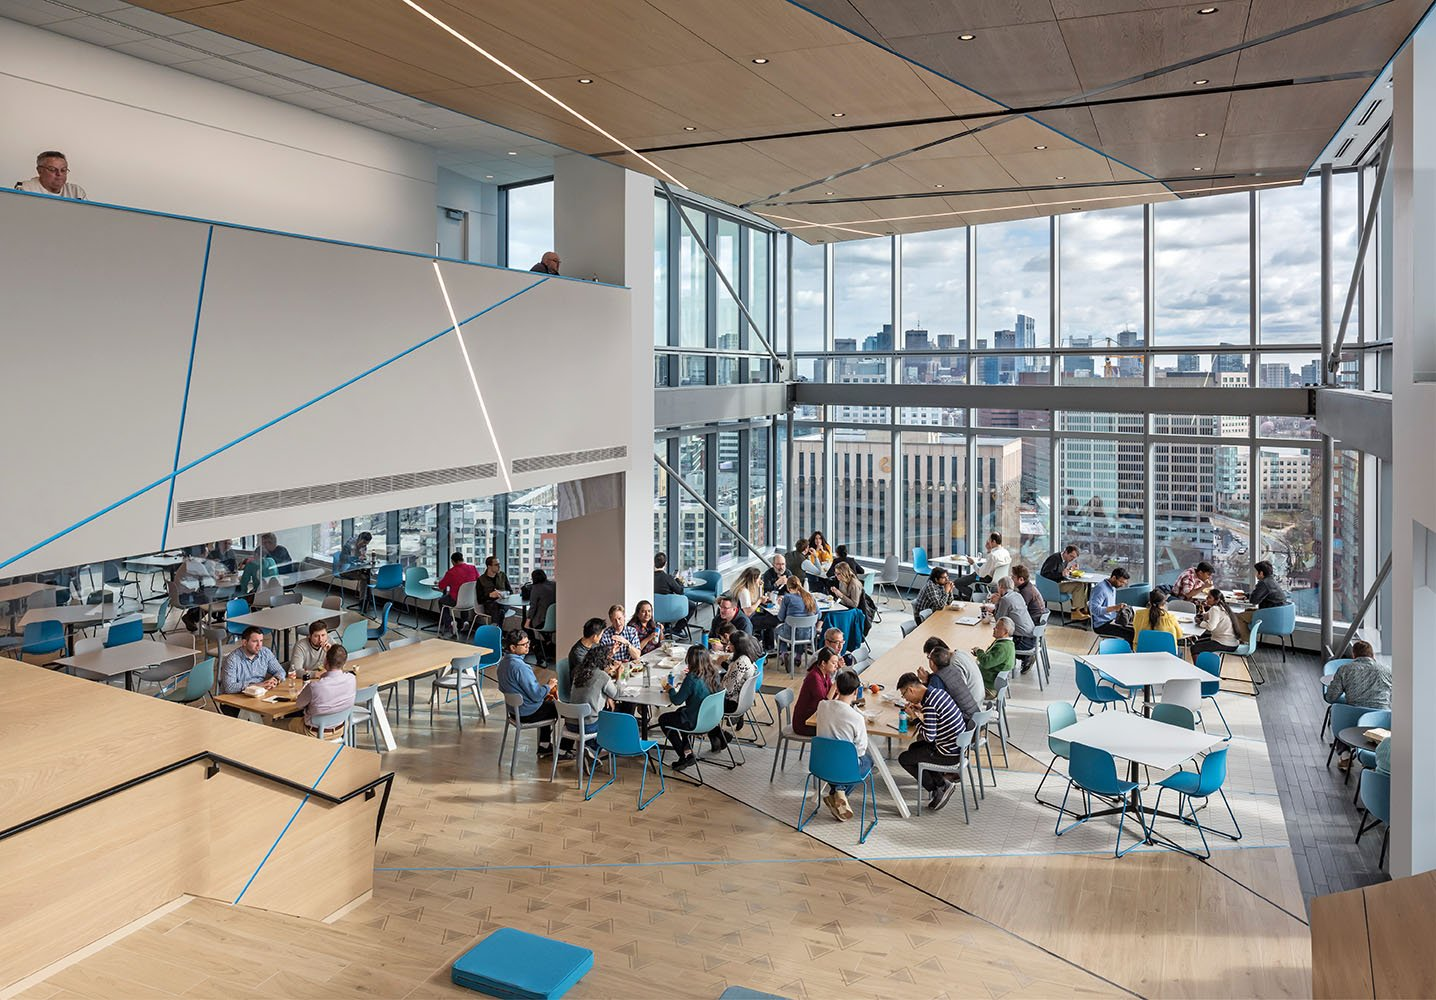 The employee cafeteria was located at the top of the building in the area with best views of the city. Giving this prime real estate to everyone is a hallmark of Akamai's dedication to its employees' exper Anton Grassl